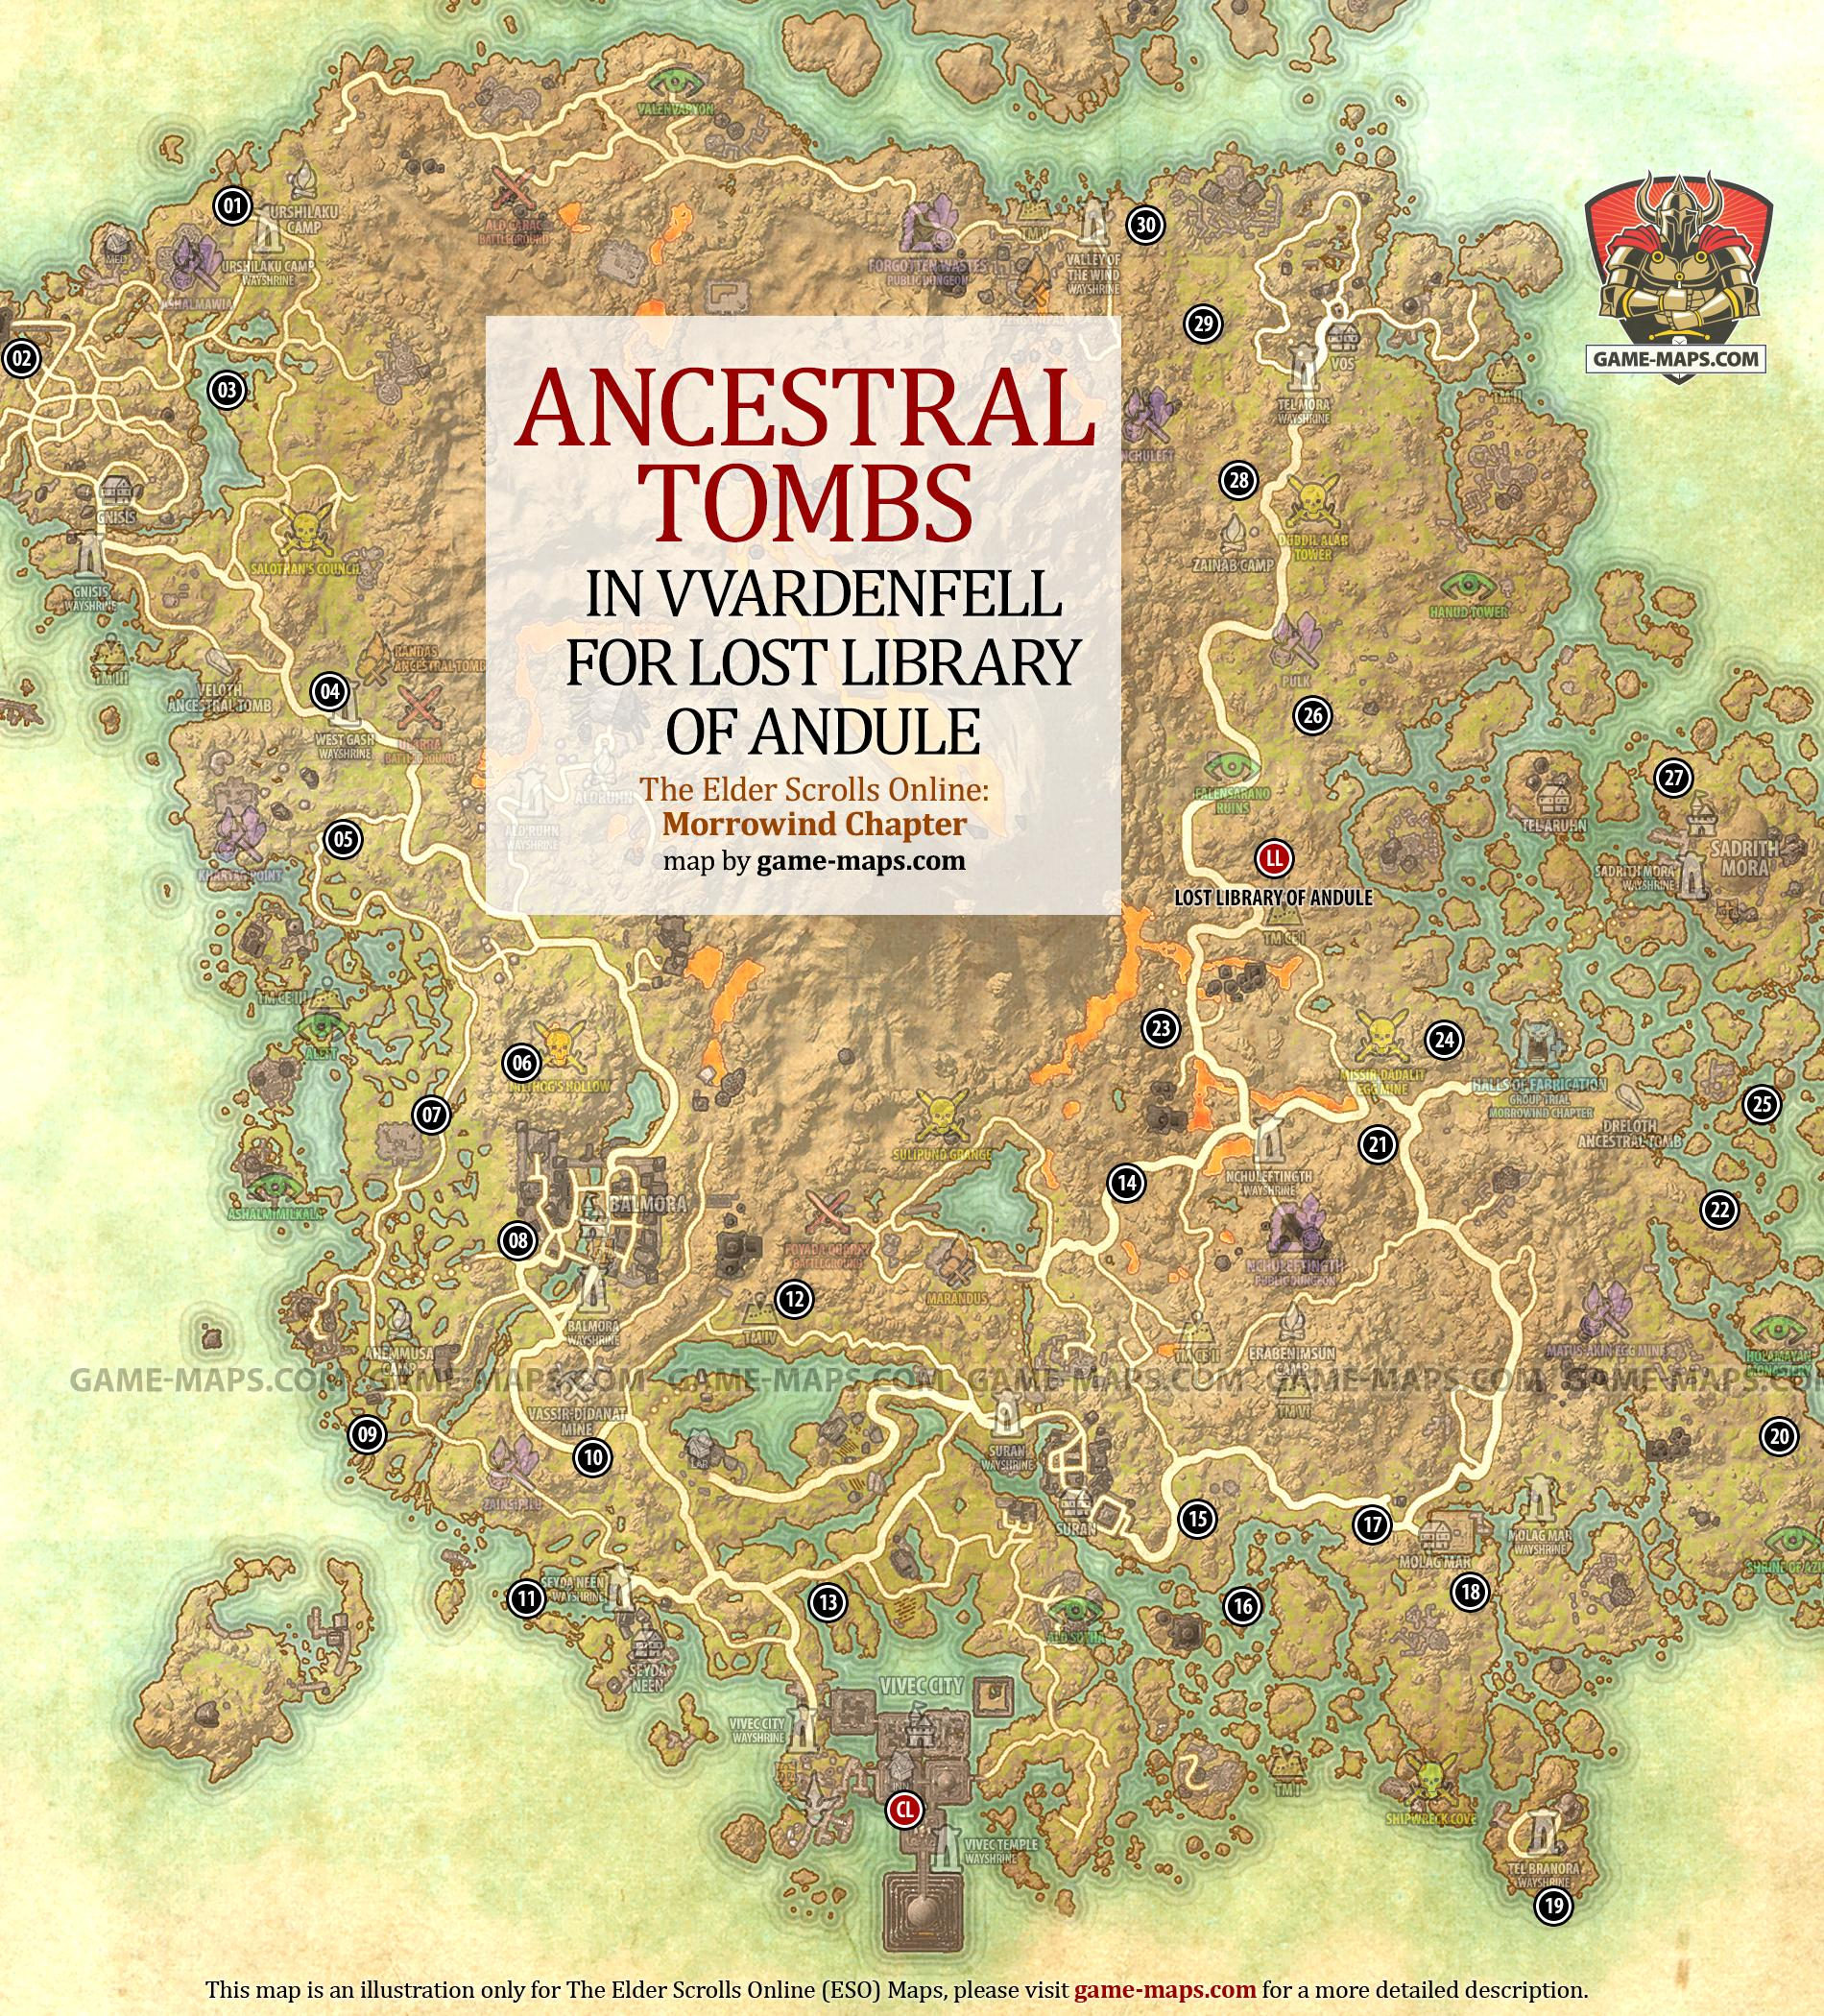 House Building Game Lost Library Of Andule Walkthrough Ancestral Tombs In